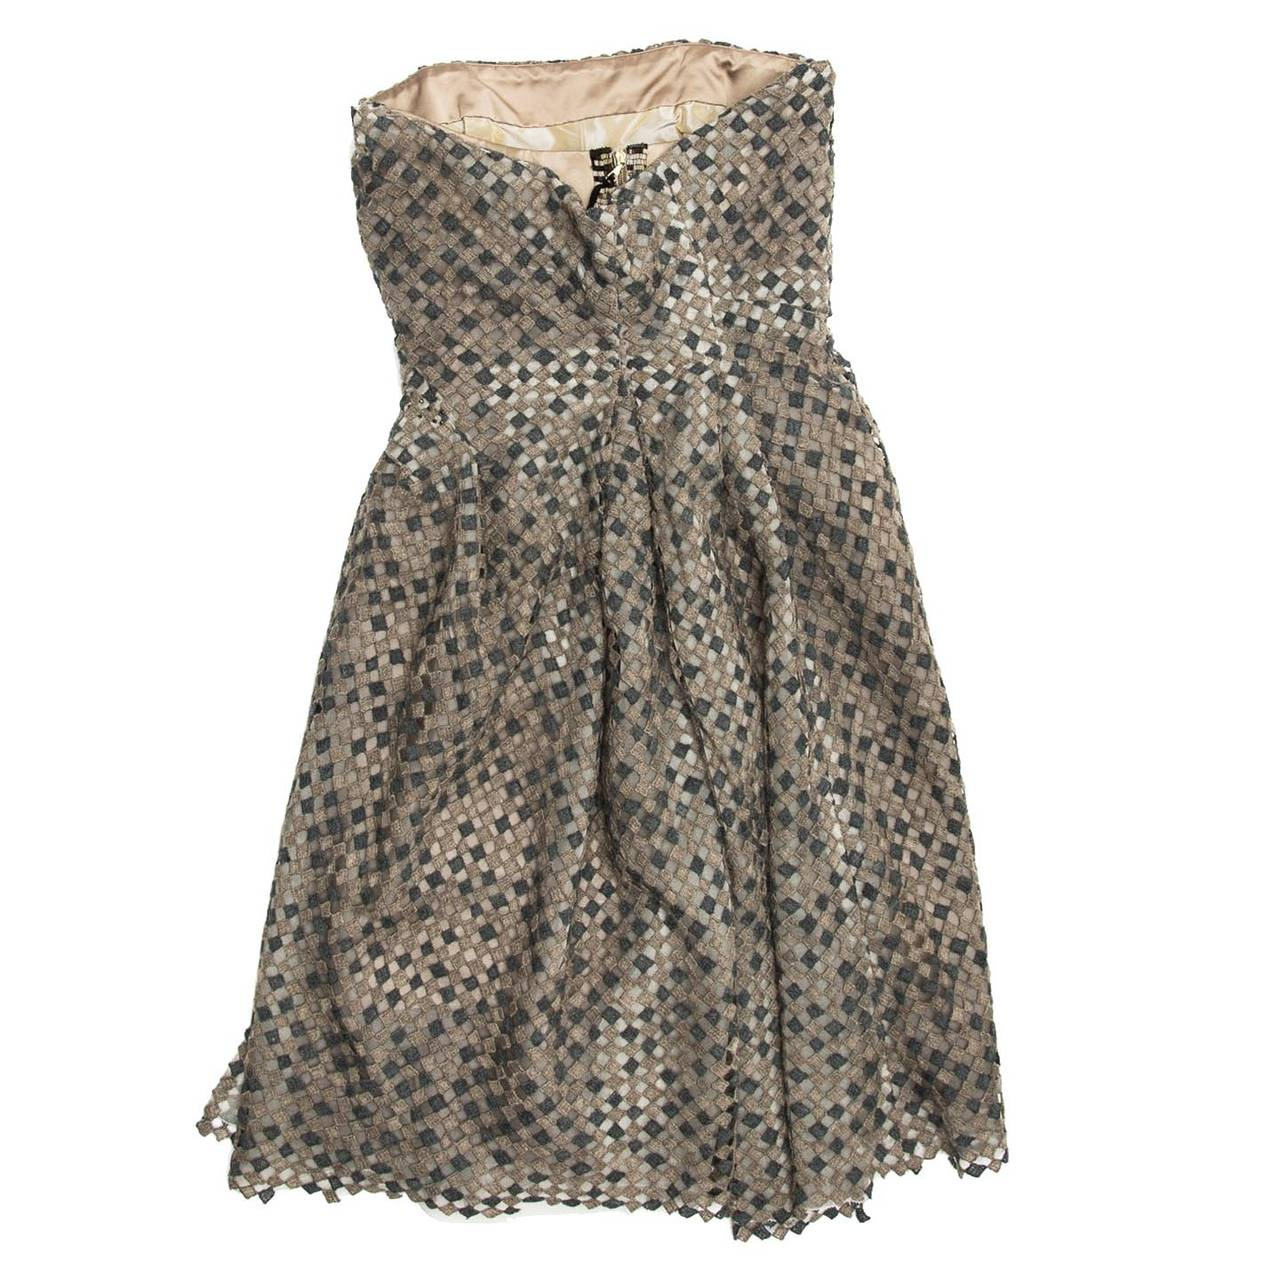 Shades of grey wool/cotton squared texture woven strapless dress. A tan fitted corset gives shape to the top of the dress and a drape enriched by bronze round beads on the left hip creates movement to the A-shape skirt. Dark grey beads embellish the